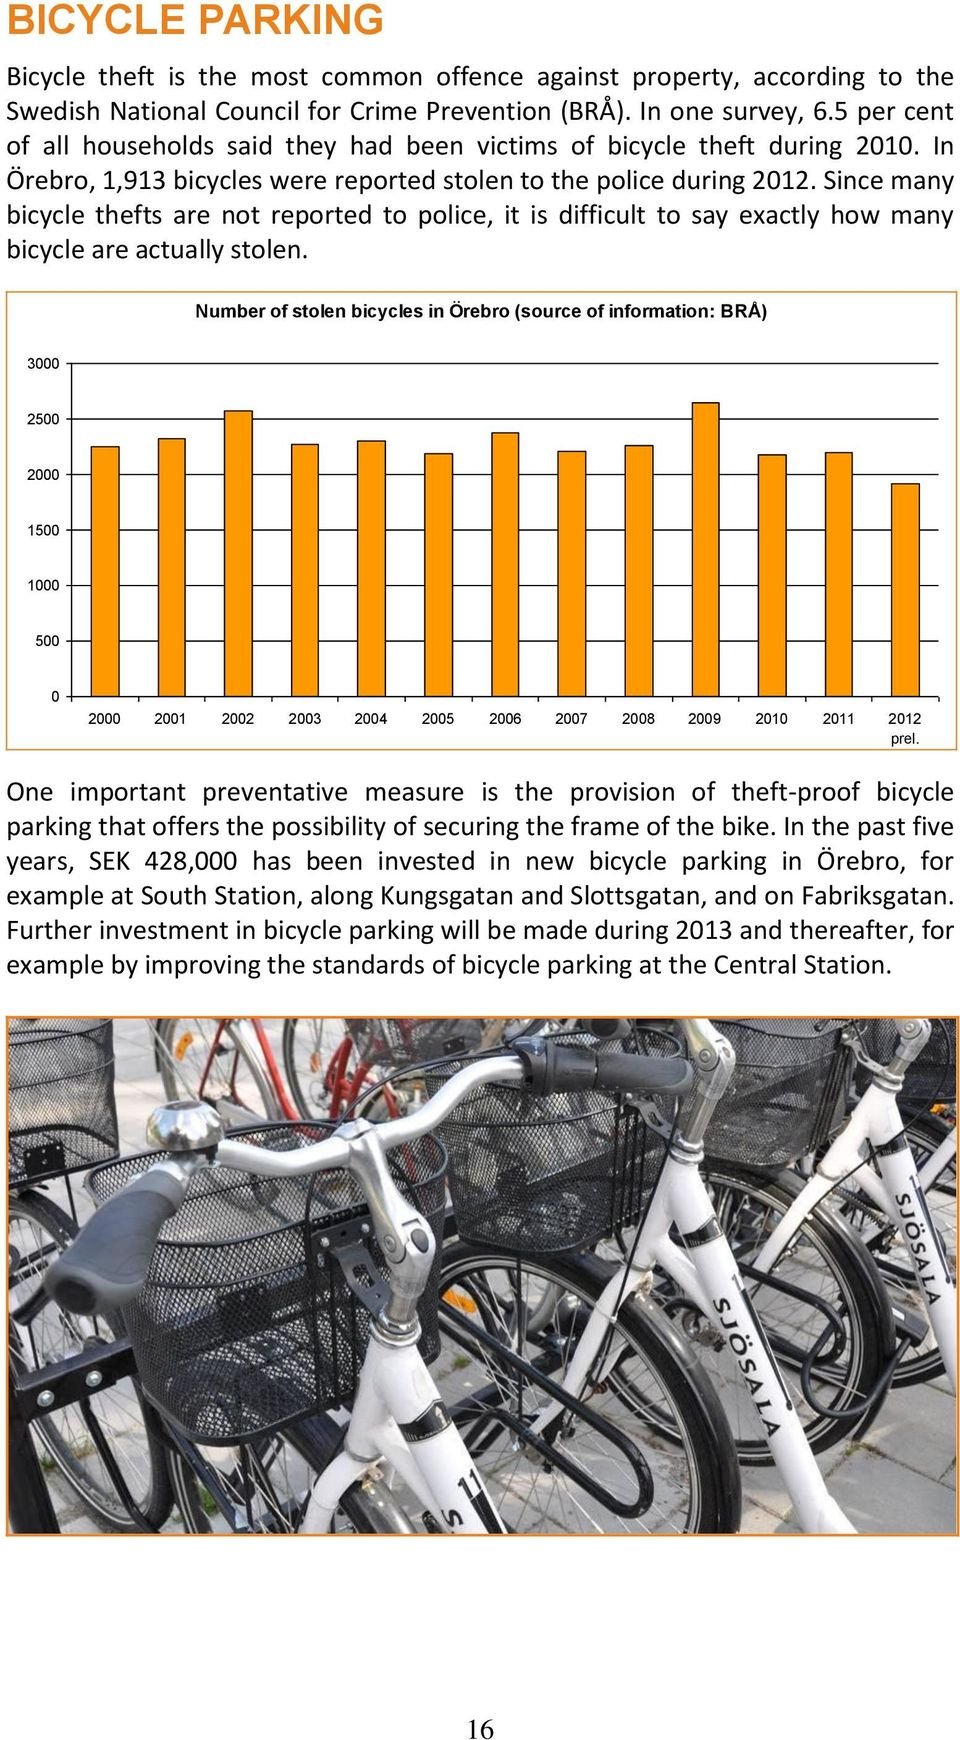 Since many bicycle thefts are not reported to police, it is difficult to say exactly how many bicycle are actually stolen.